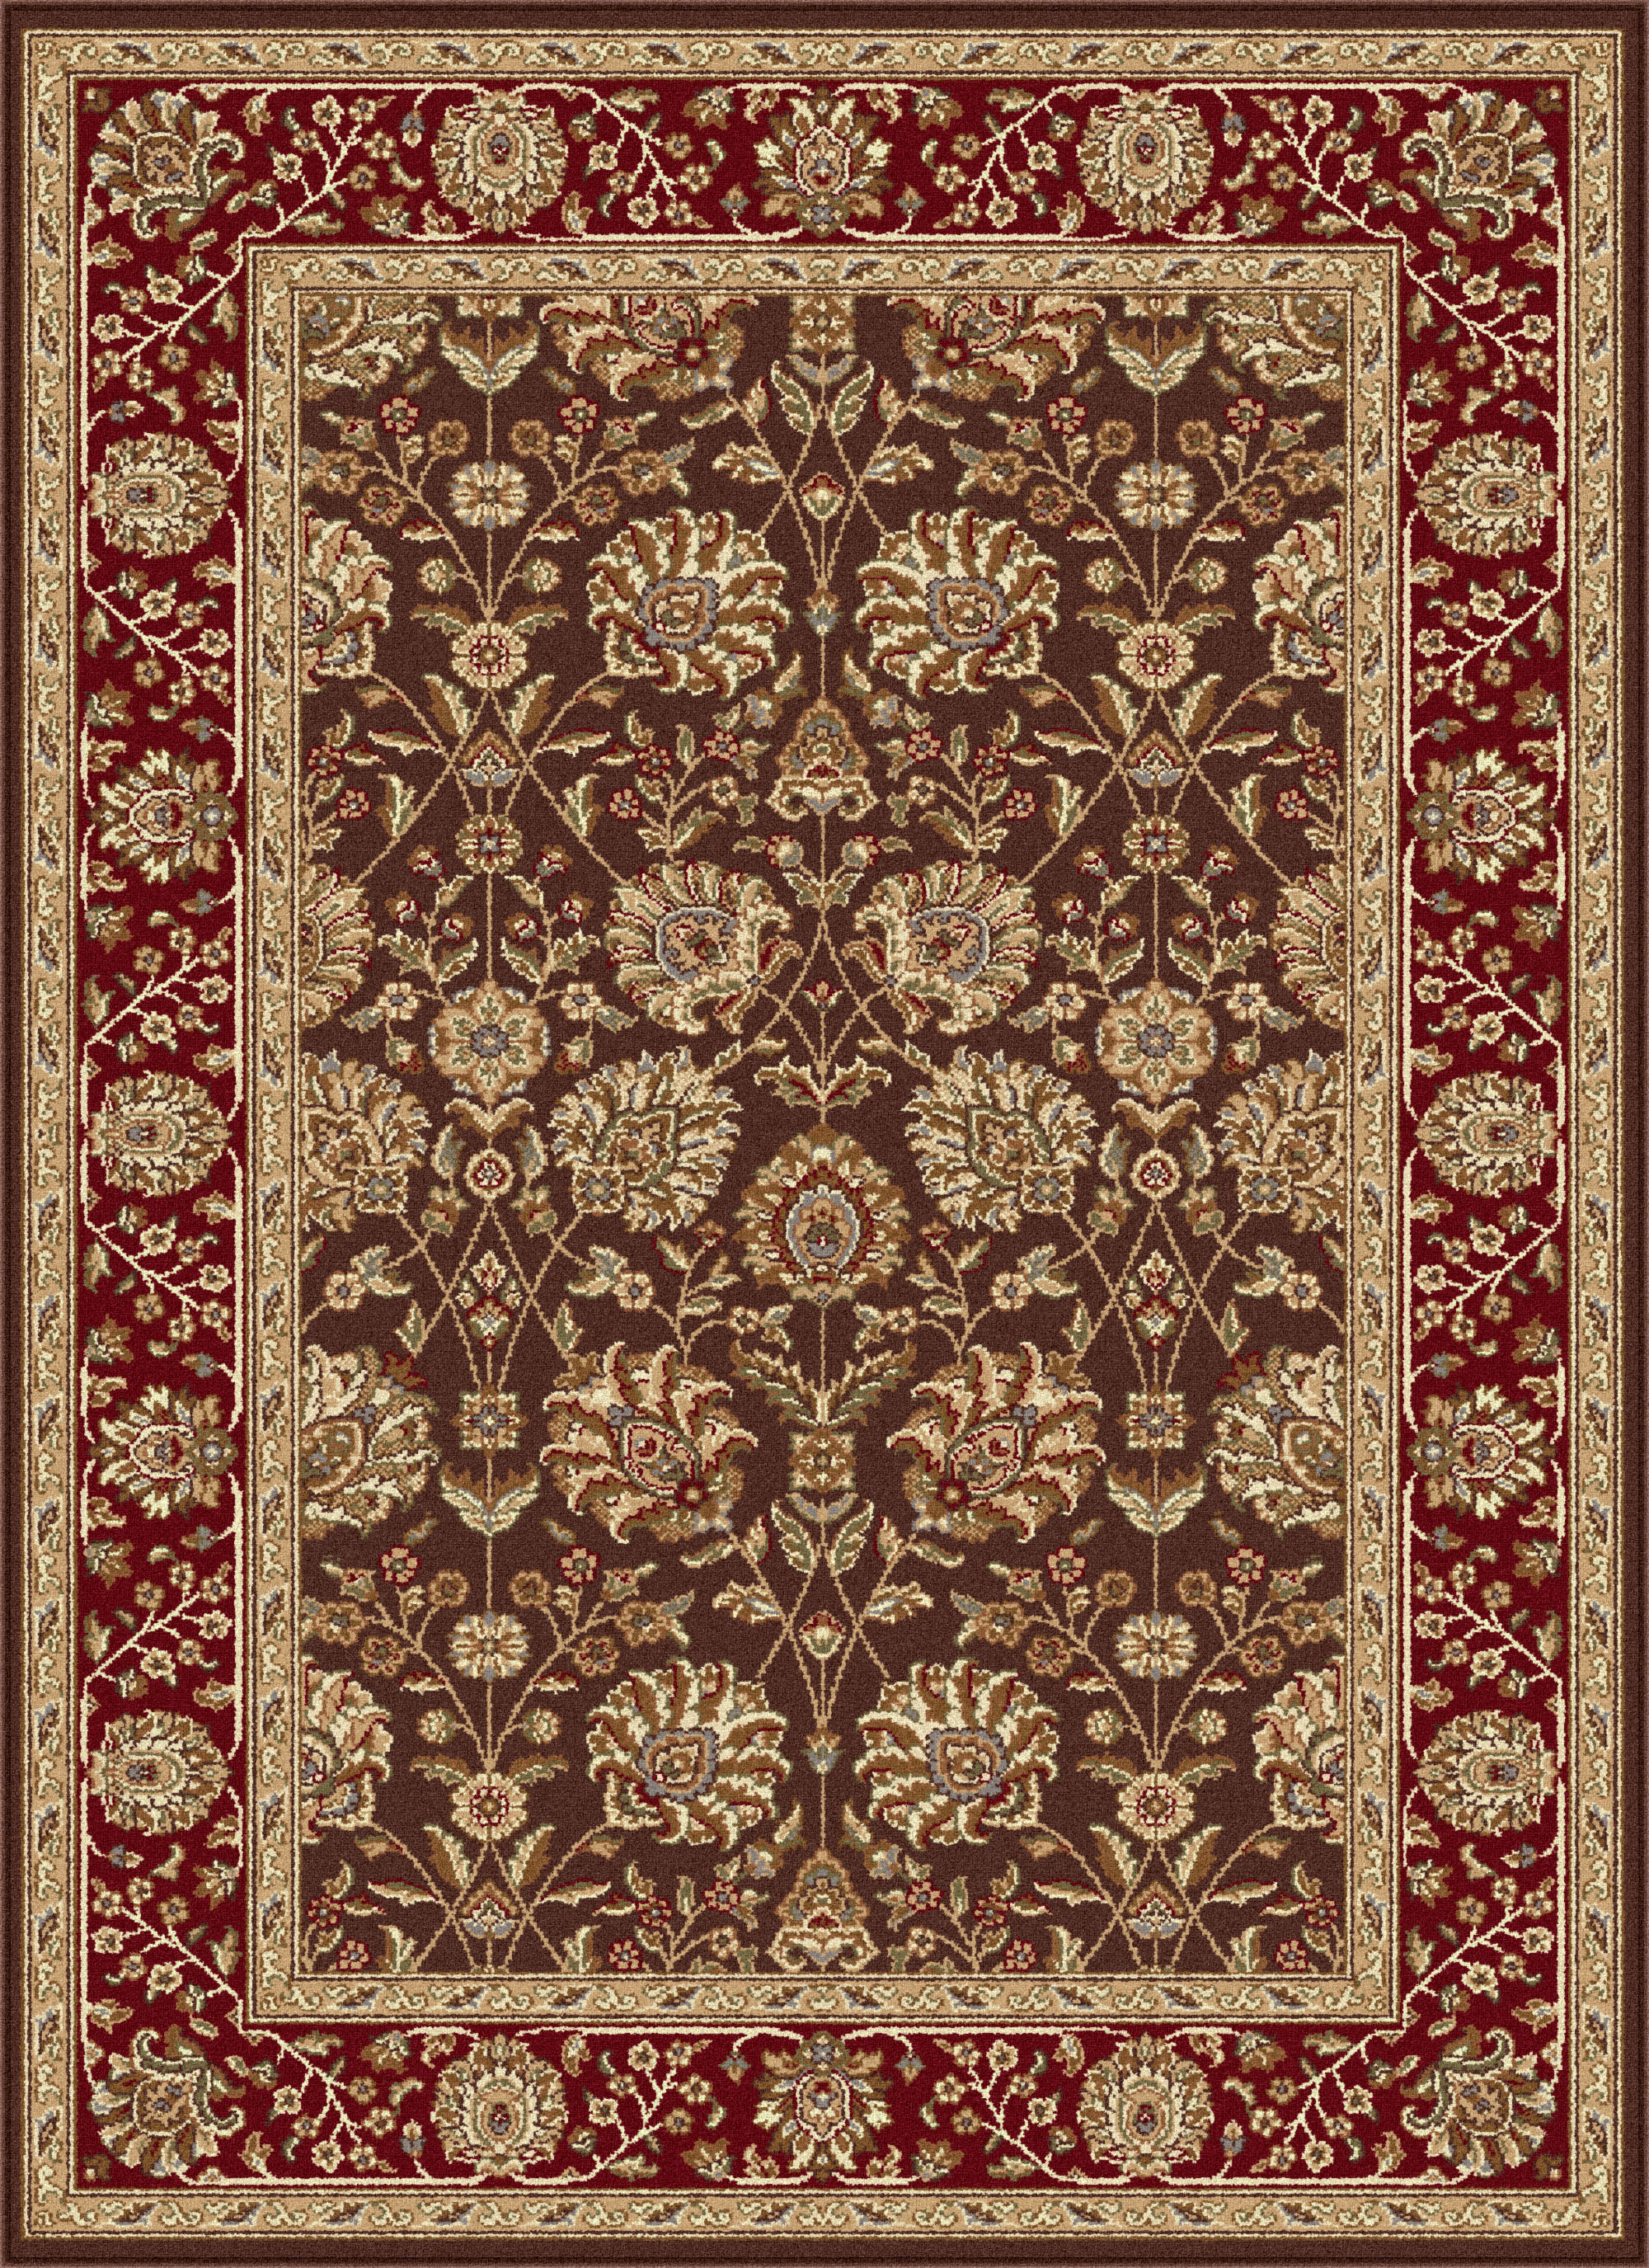 Brown Vines Scrolls Oriental Area Rug Floral Bordered